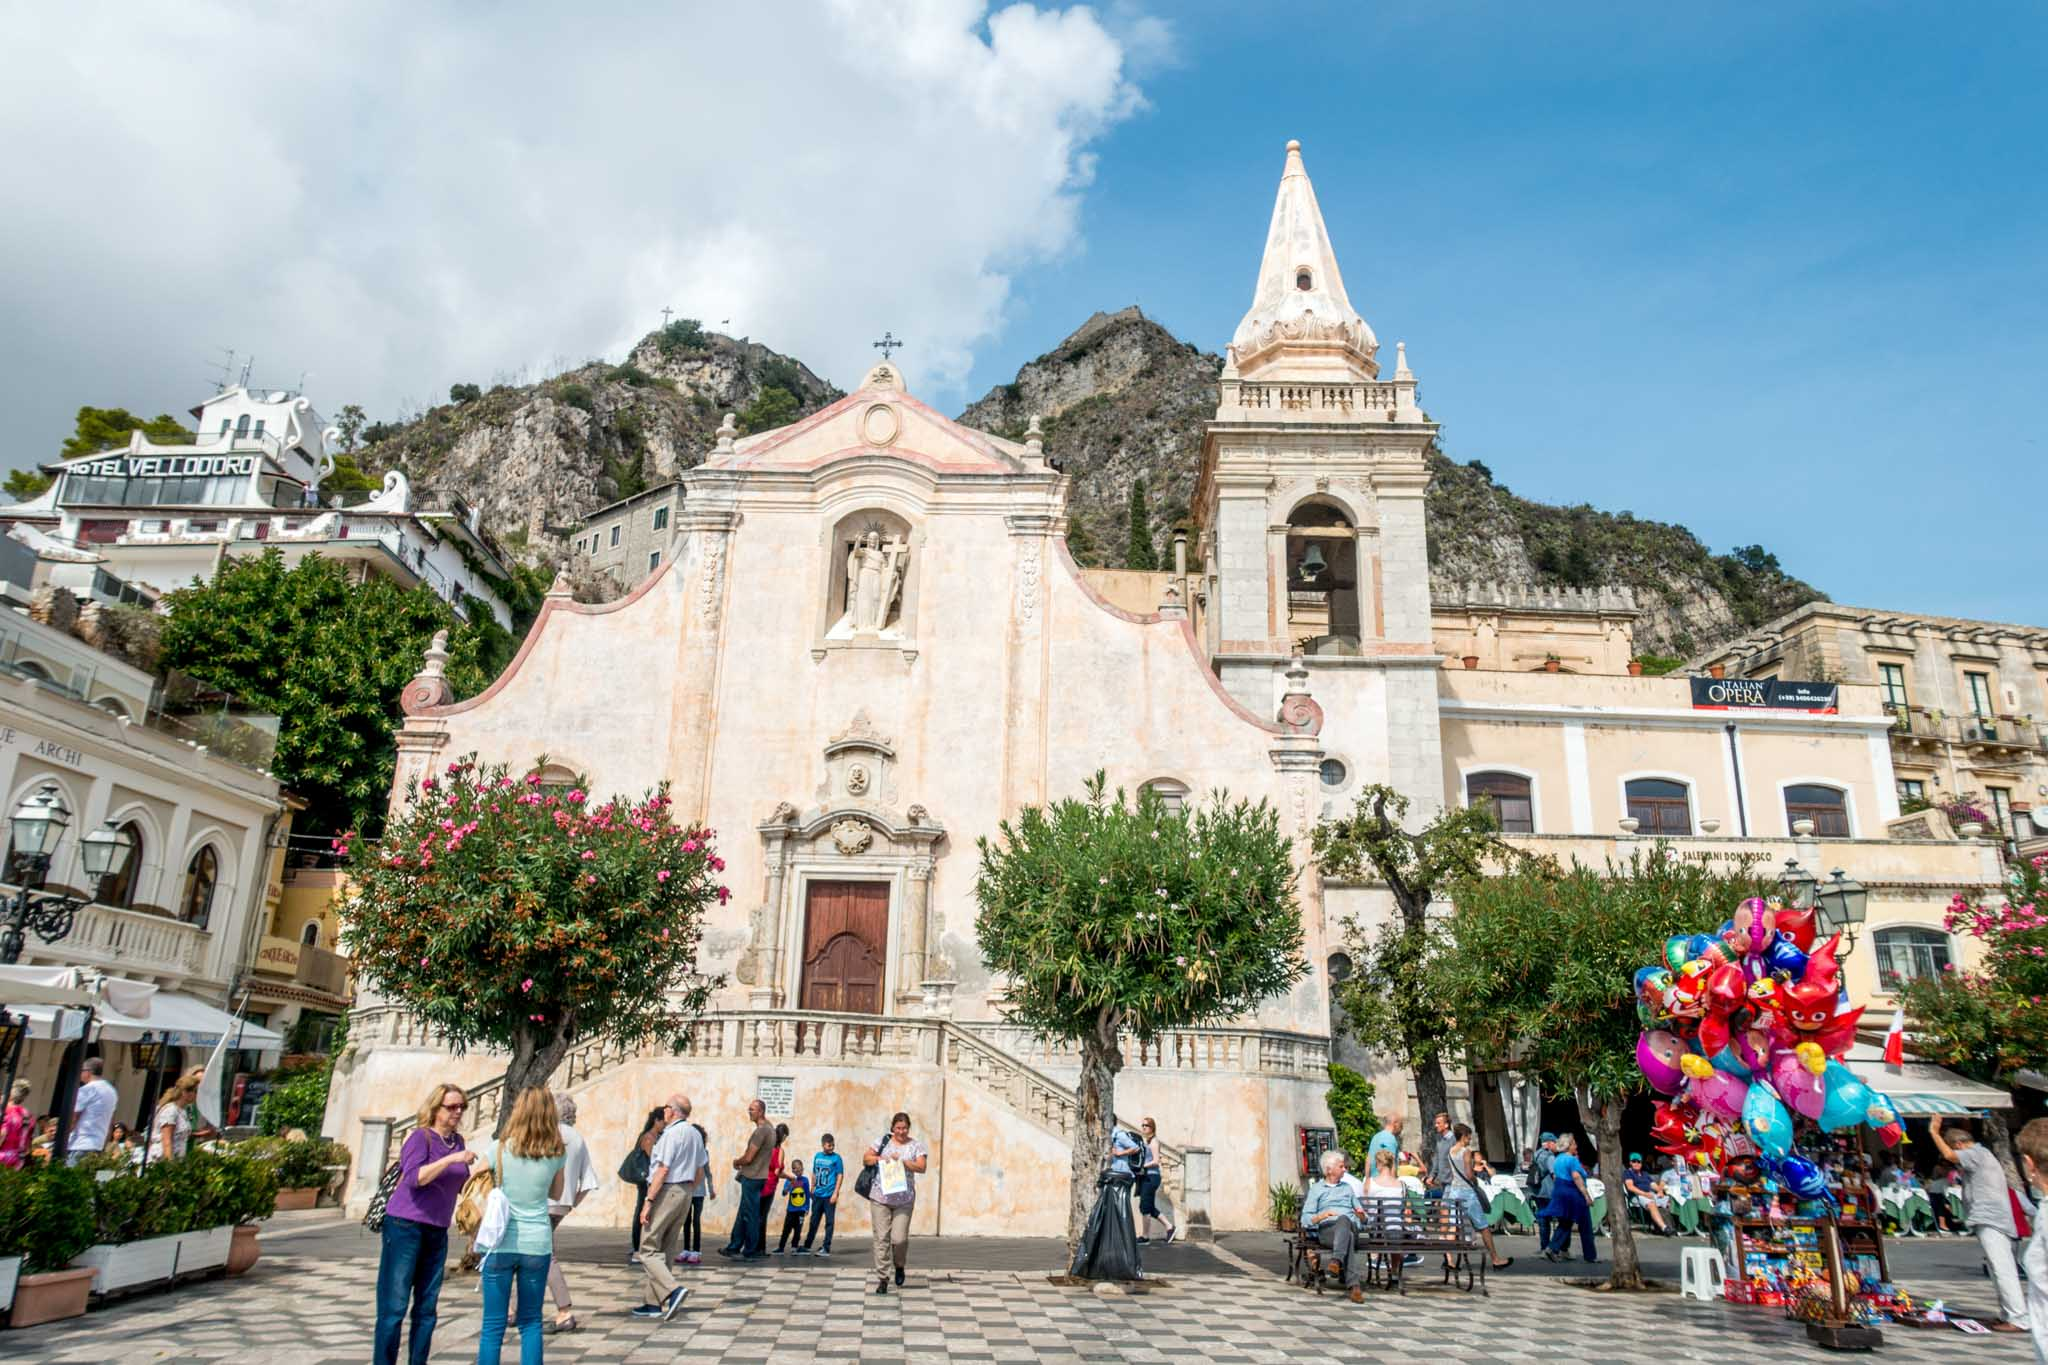 People in square in front of church in Taormina